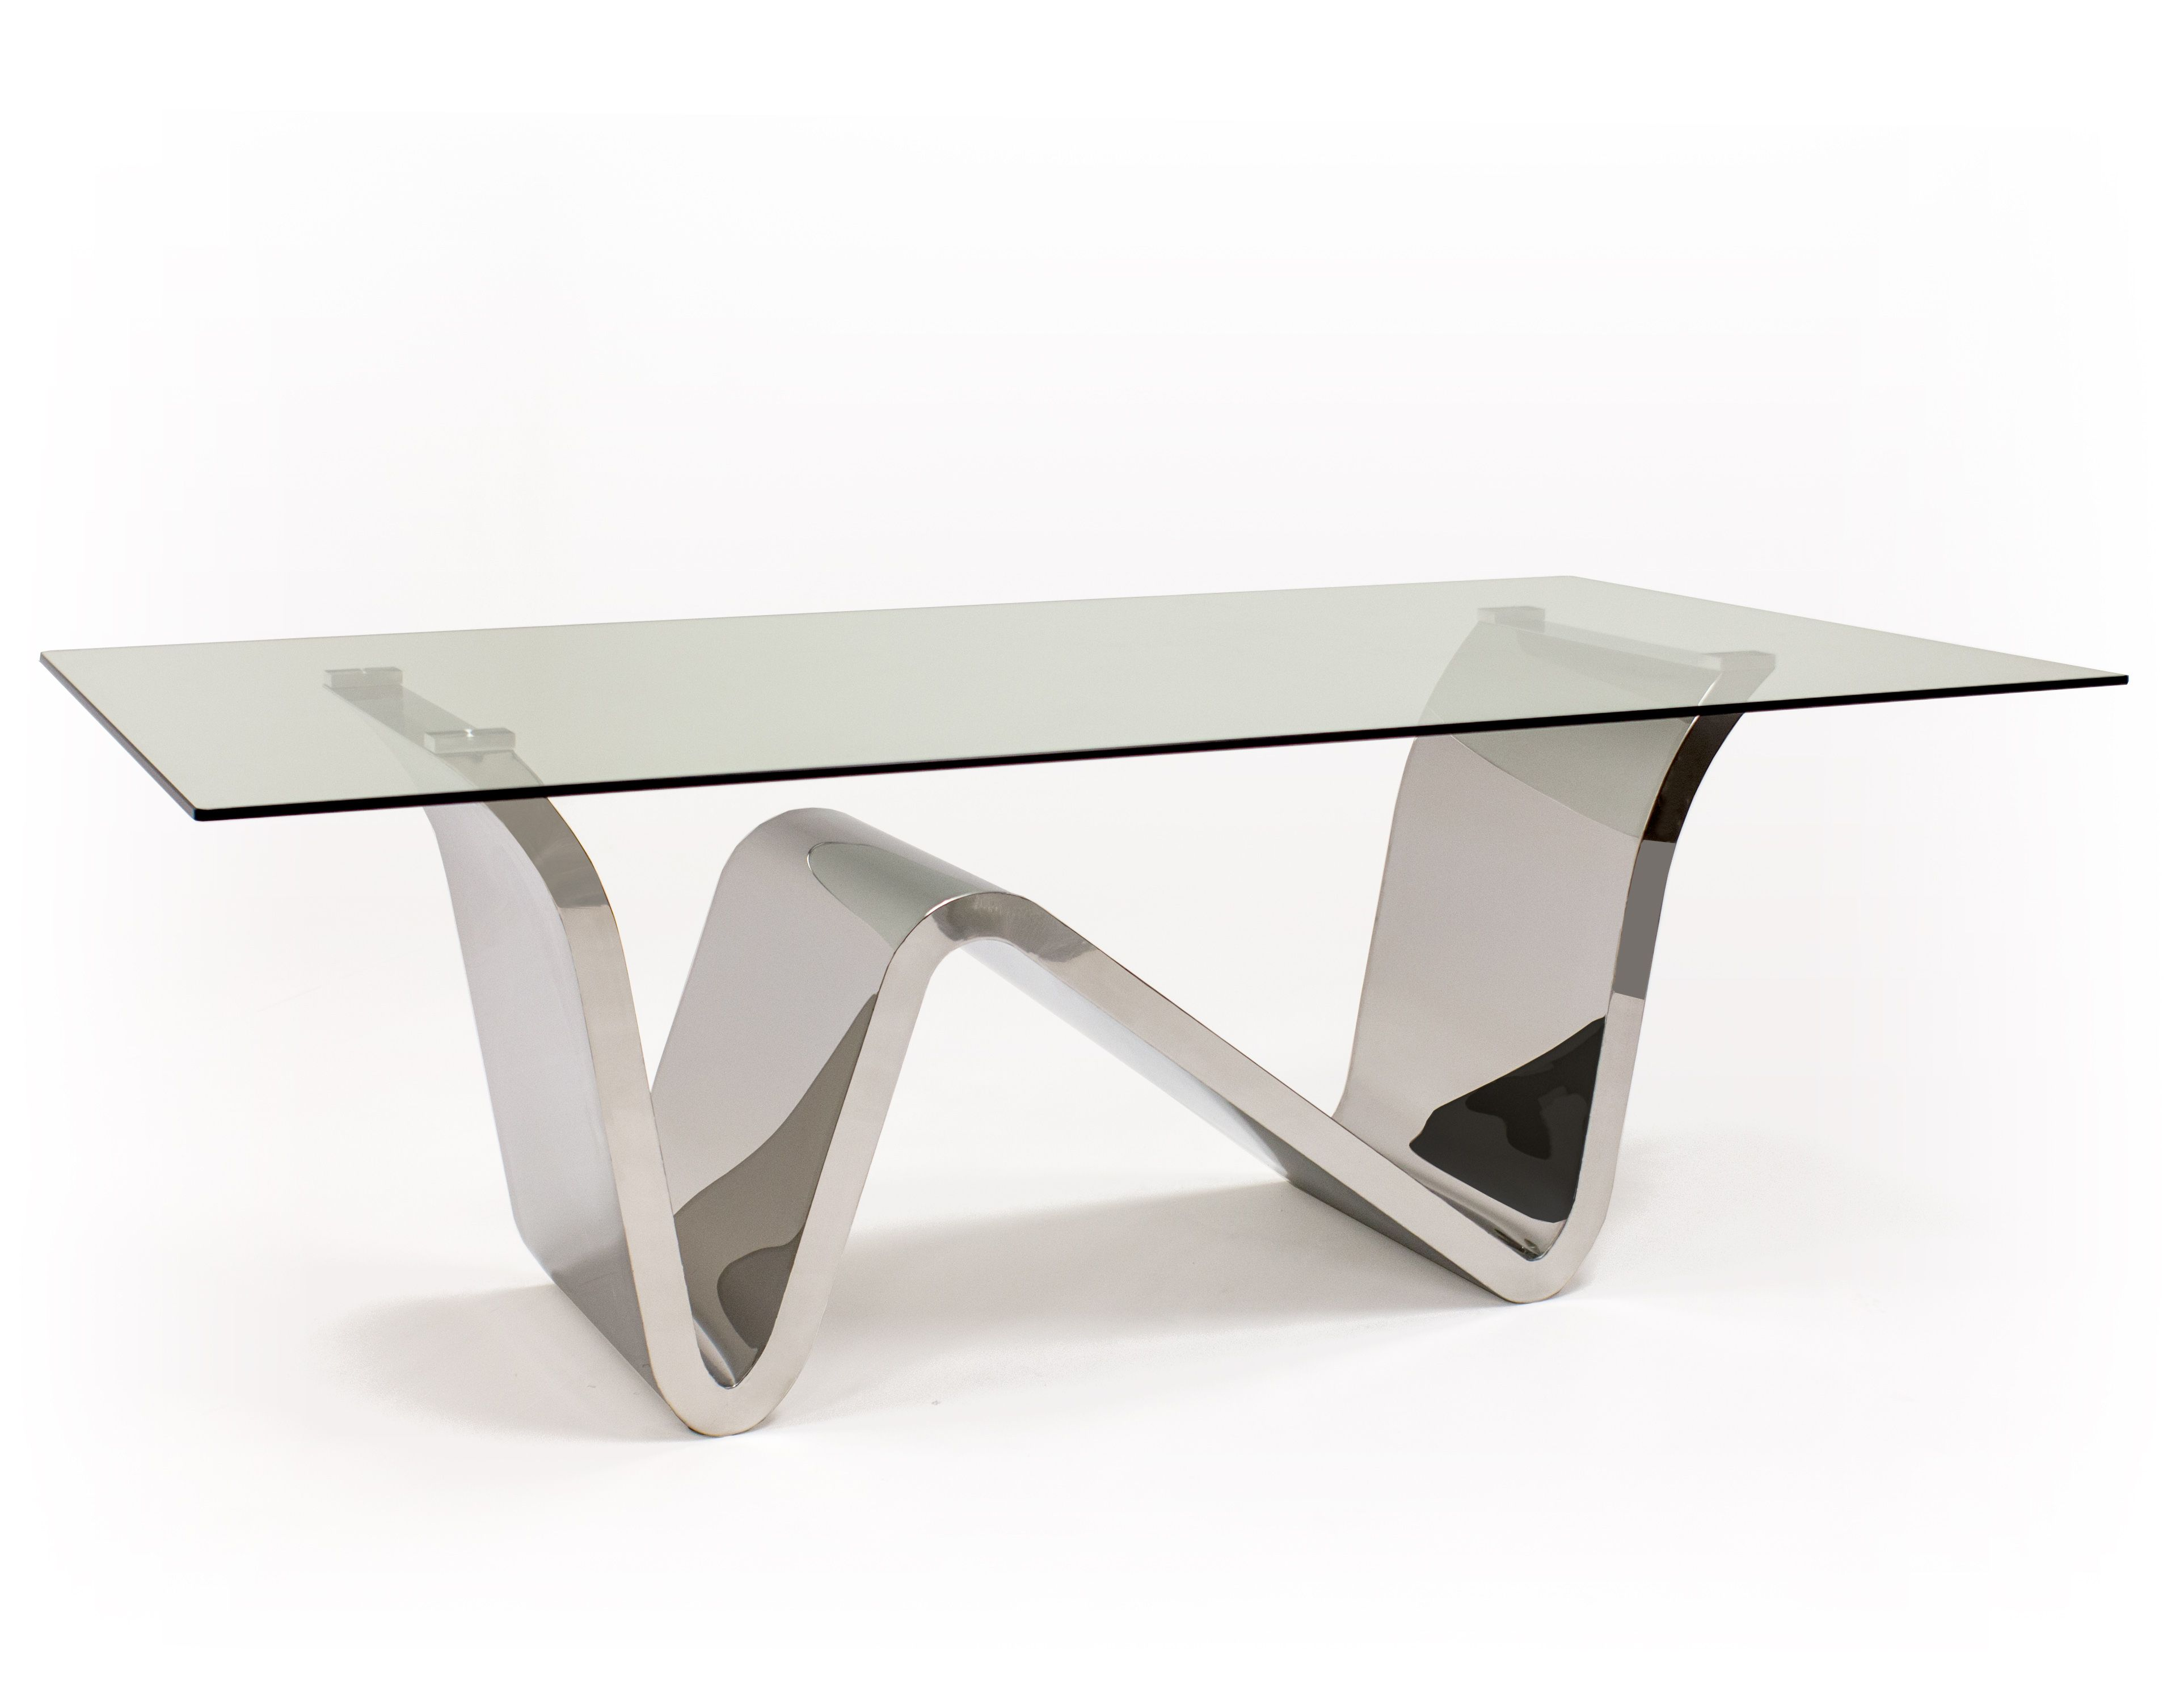 Waverly Dining Table Truly Unique Modern Glass Table With Metal